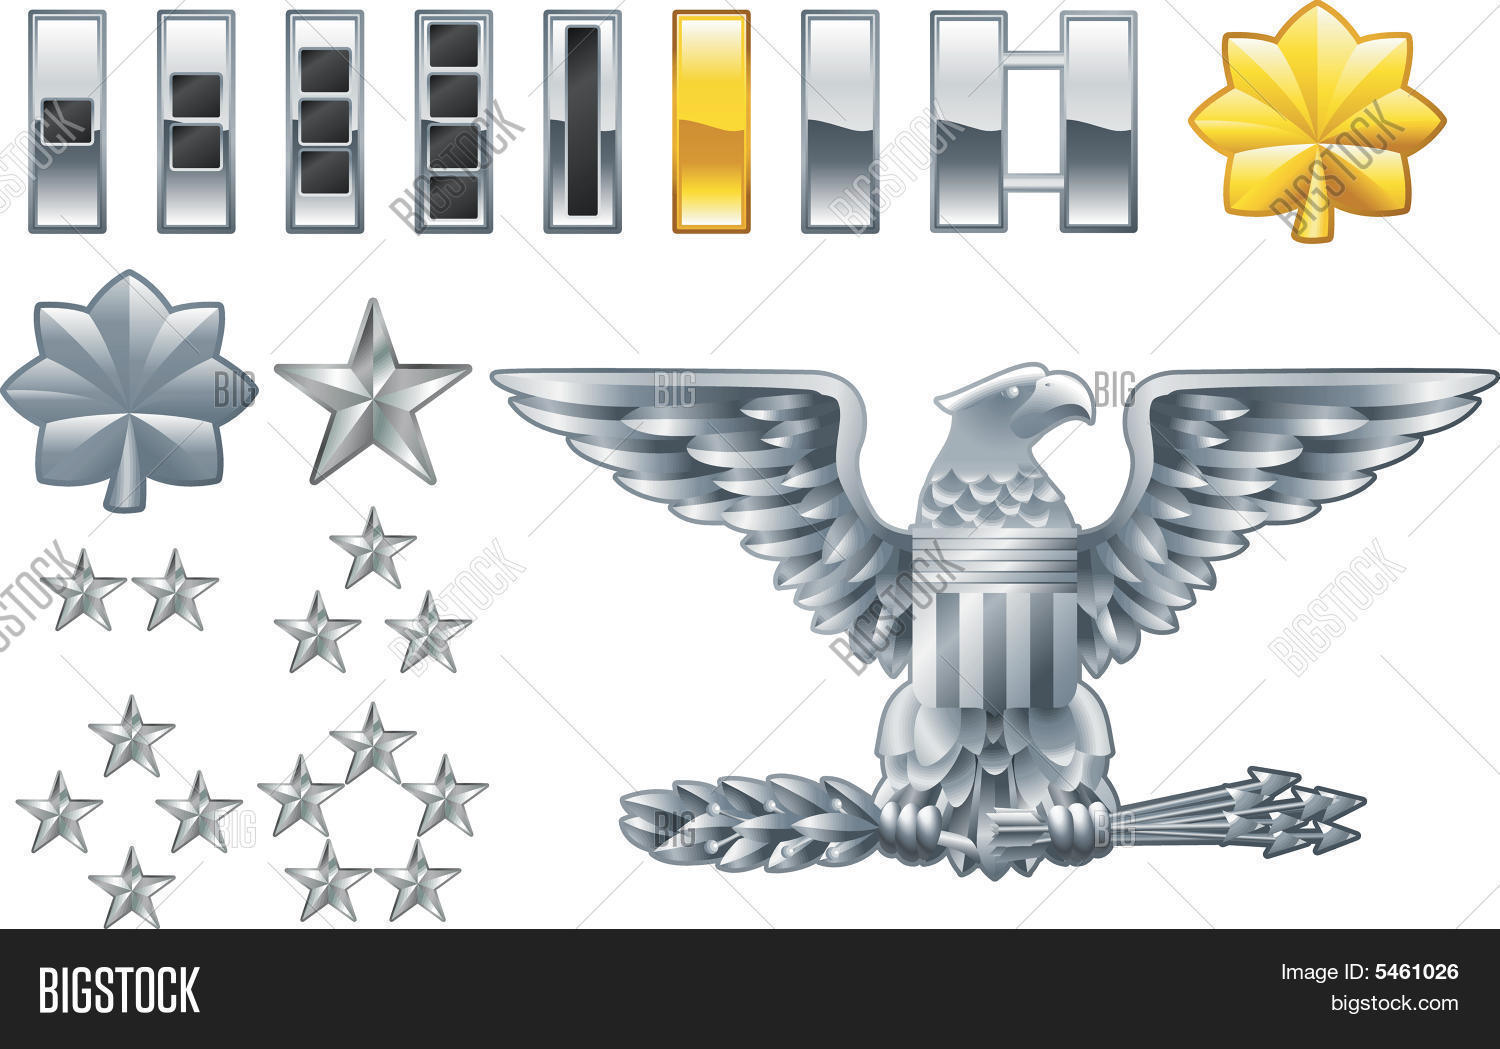 Charming American Army Officer Ranks Insignia Icons